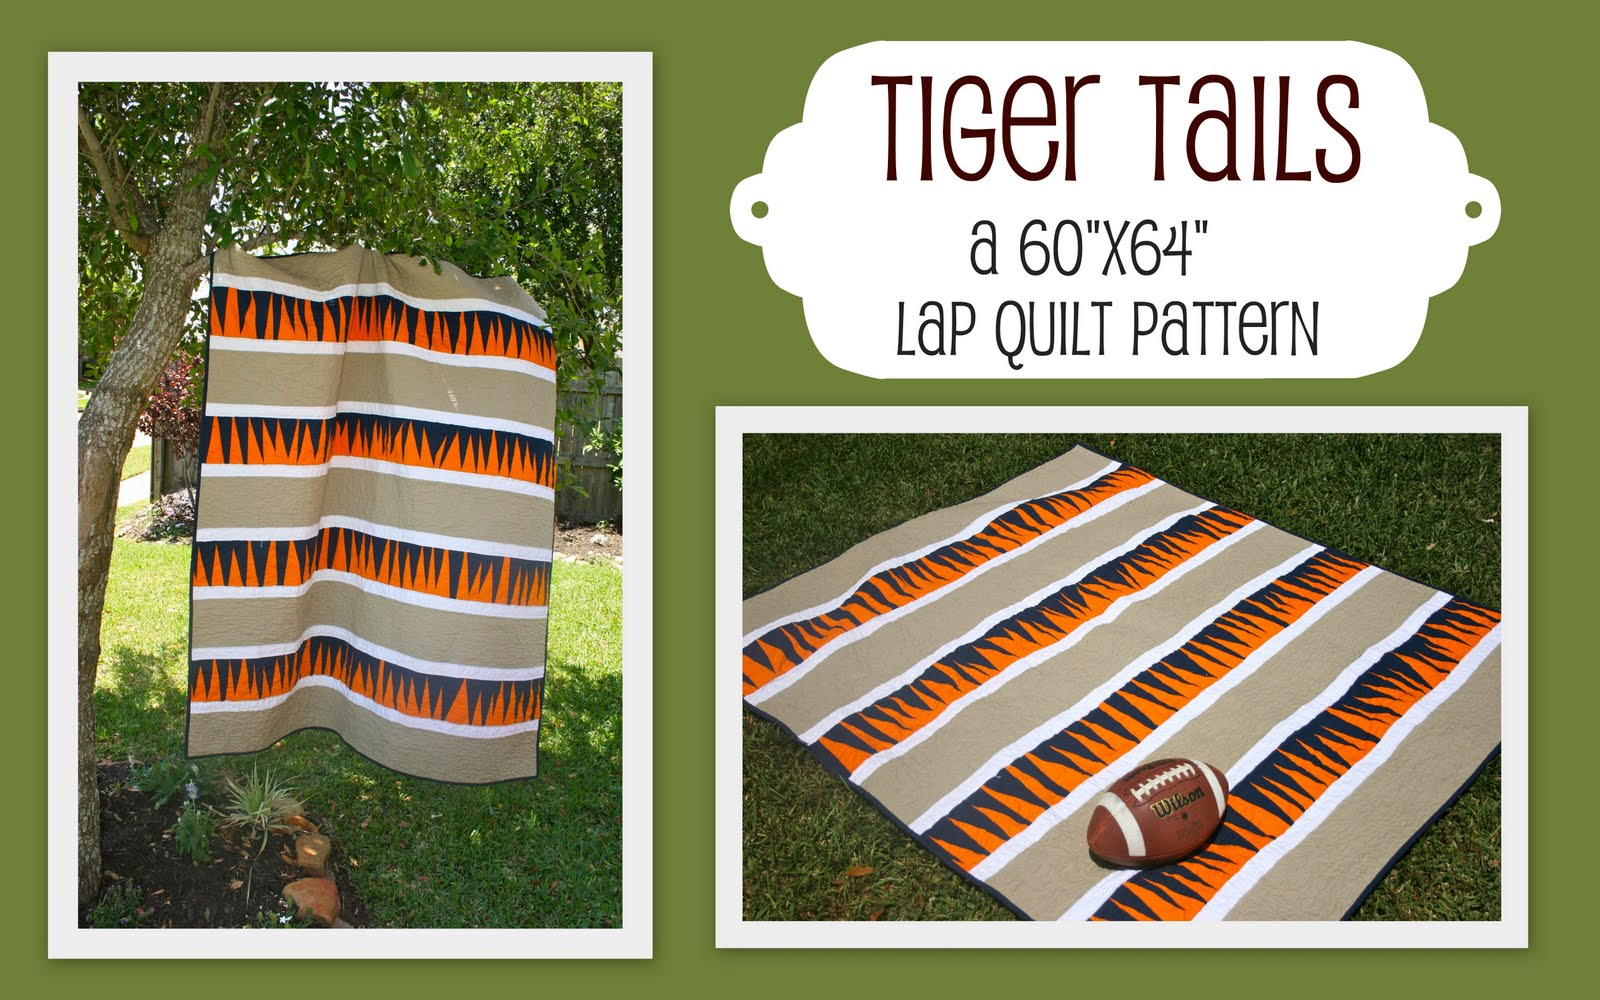 Alabama Football Quilt Pattern http://tulip-patch.blogspot.com/2011/04/new-pattern-tiger-tails.html